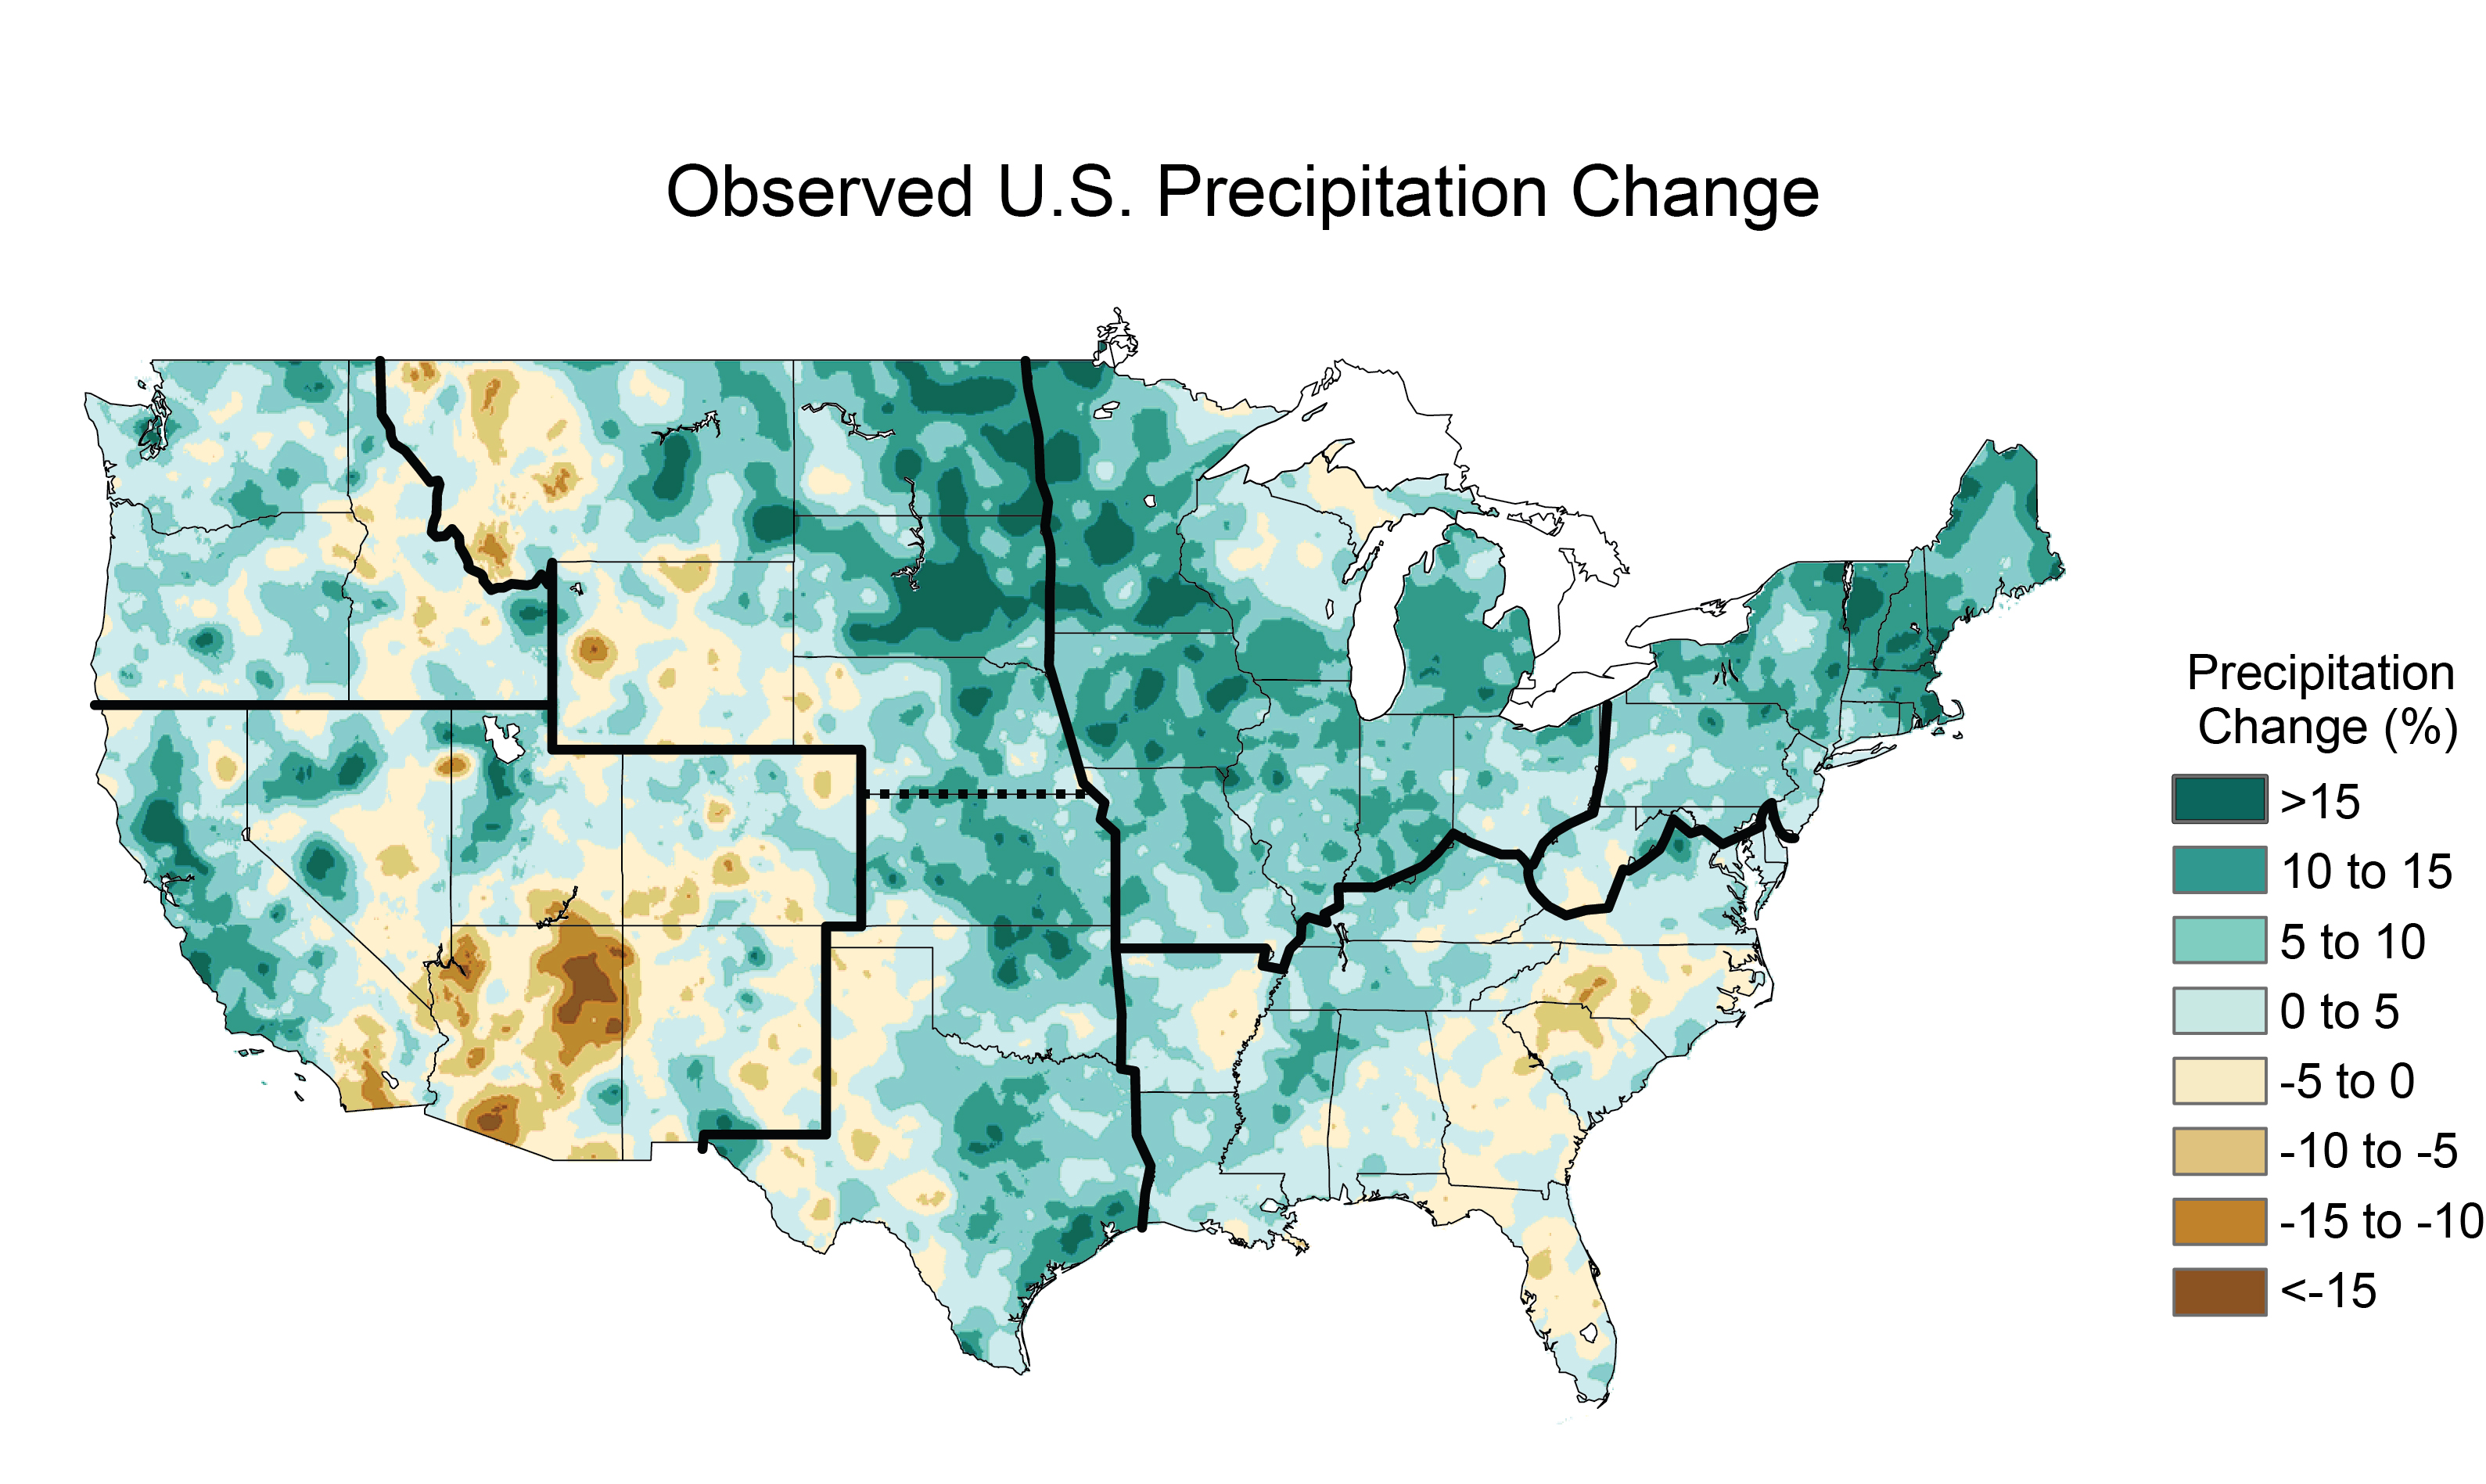 Climate Changes In The United States Image Of The Day - Annual precipitation map us